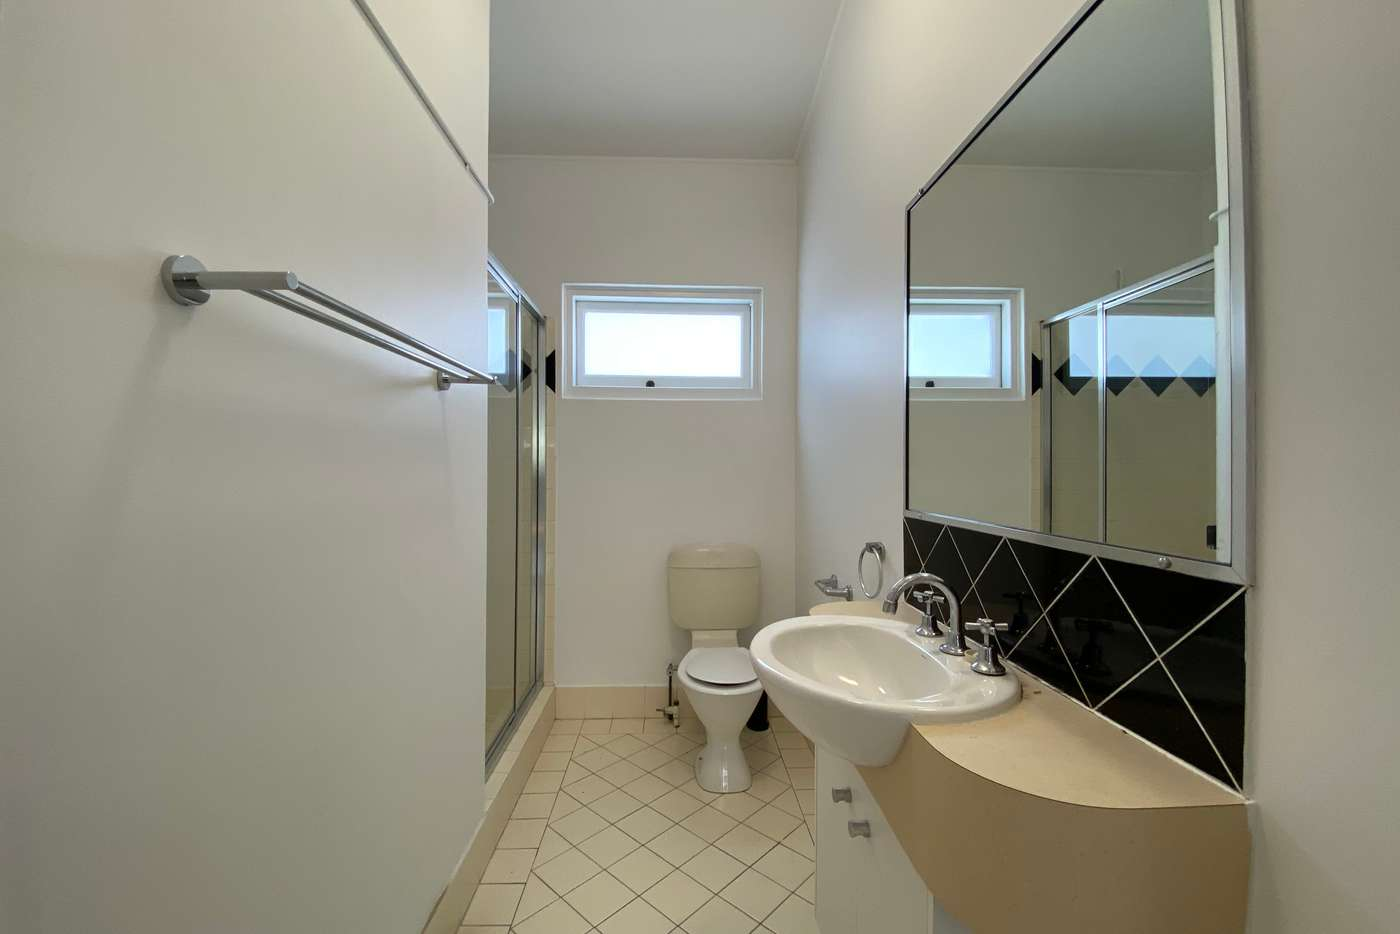 Sixth view of Homely apartment listing, 9/166 James Street, New Farm QLD 4005